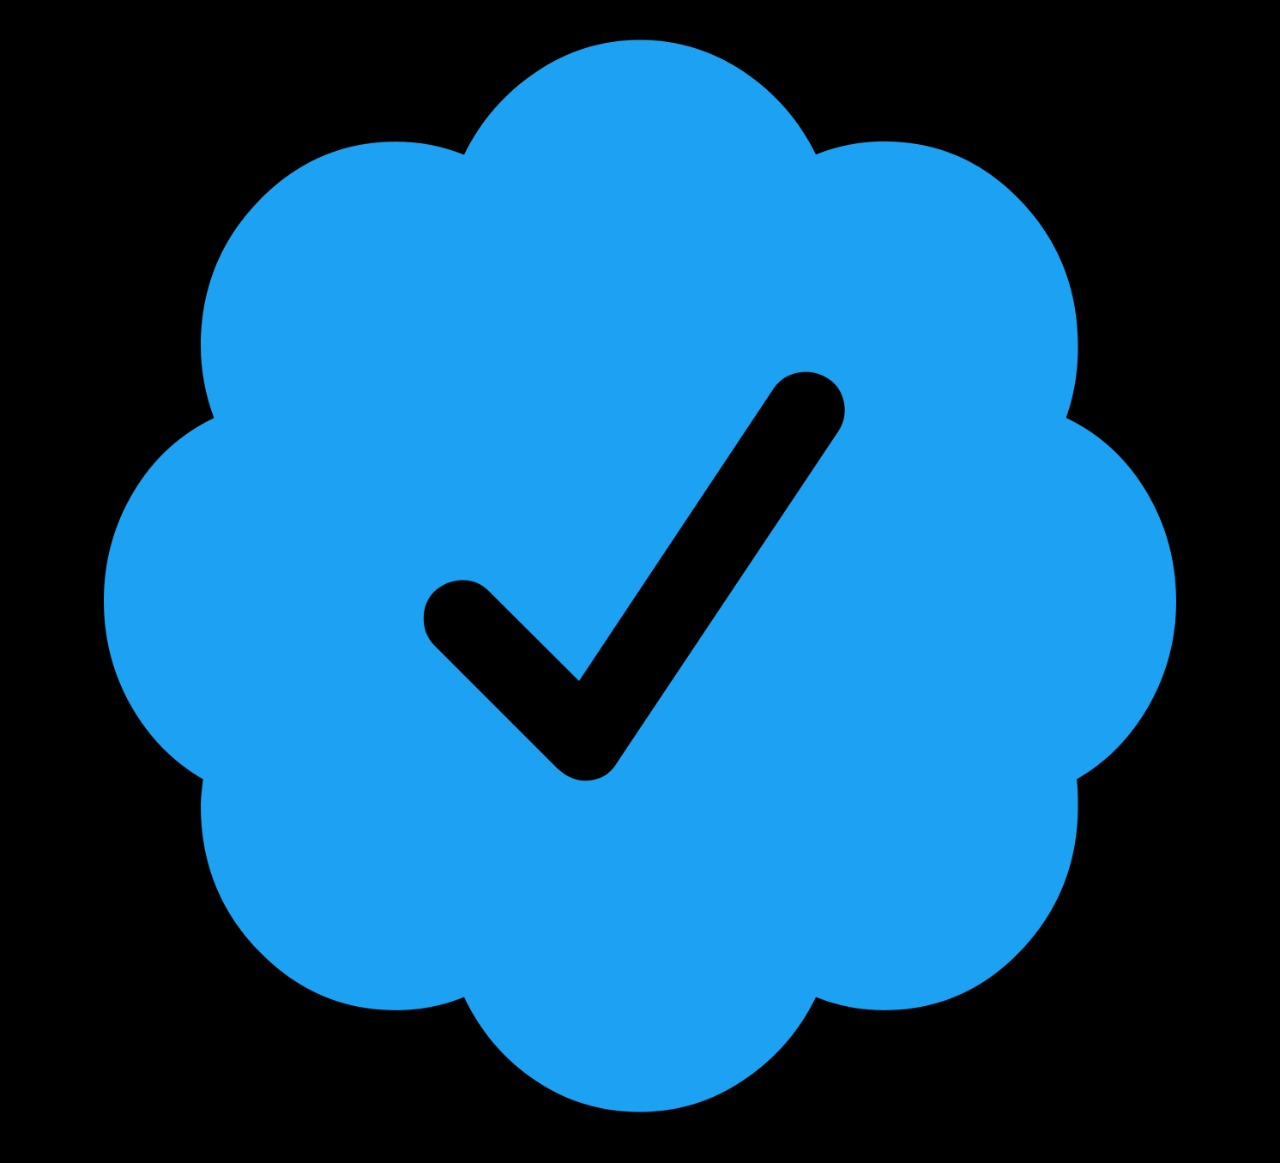 Twitter might again start taking verification requests.